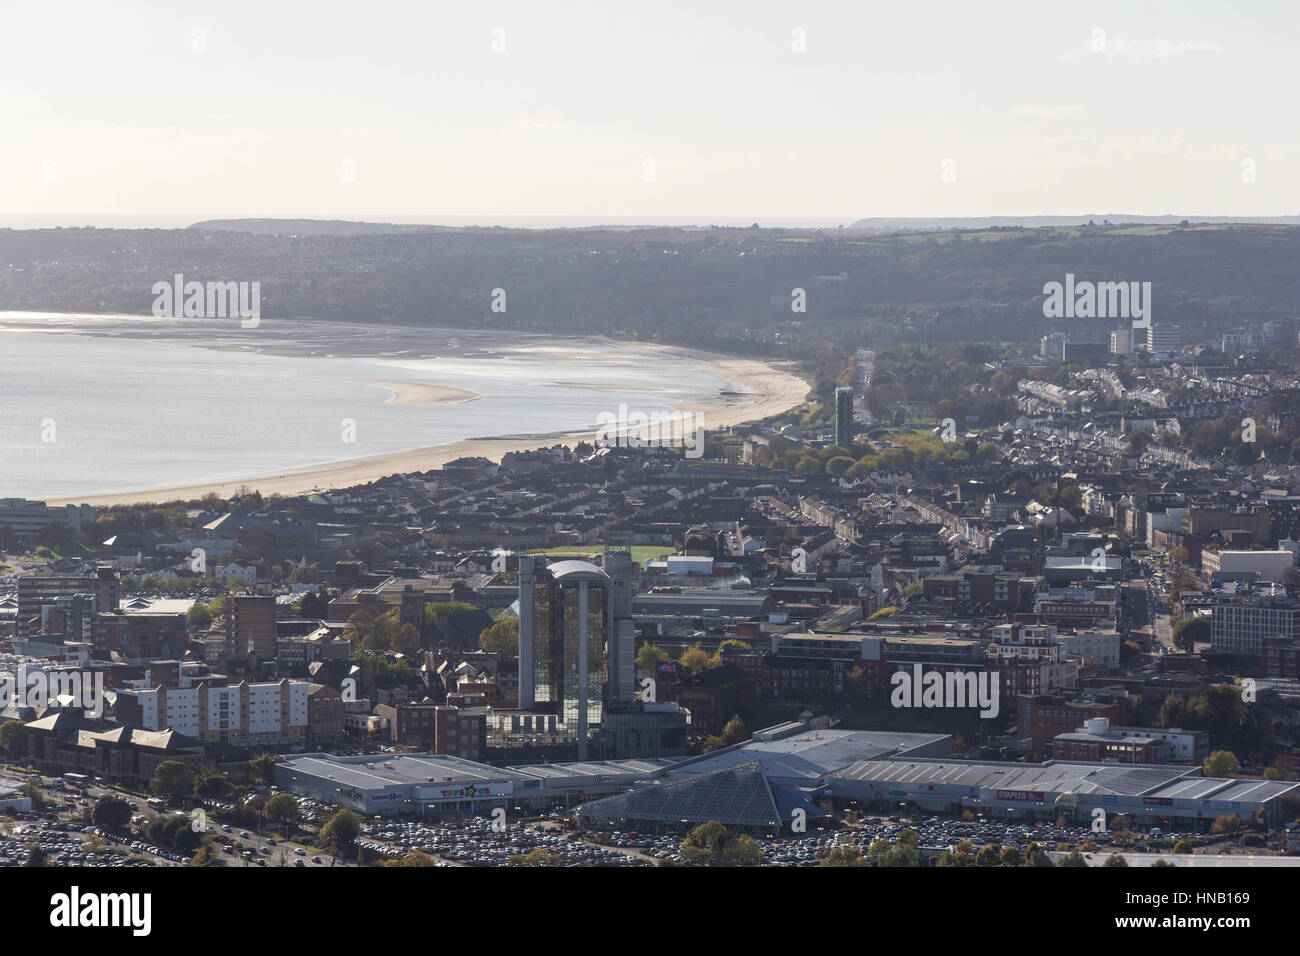 Swansea Bay view. - Stock Image